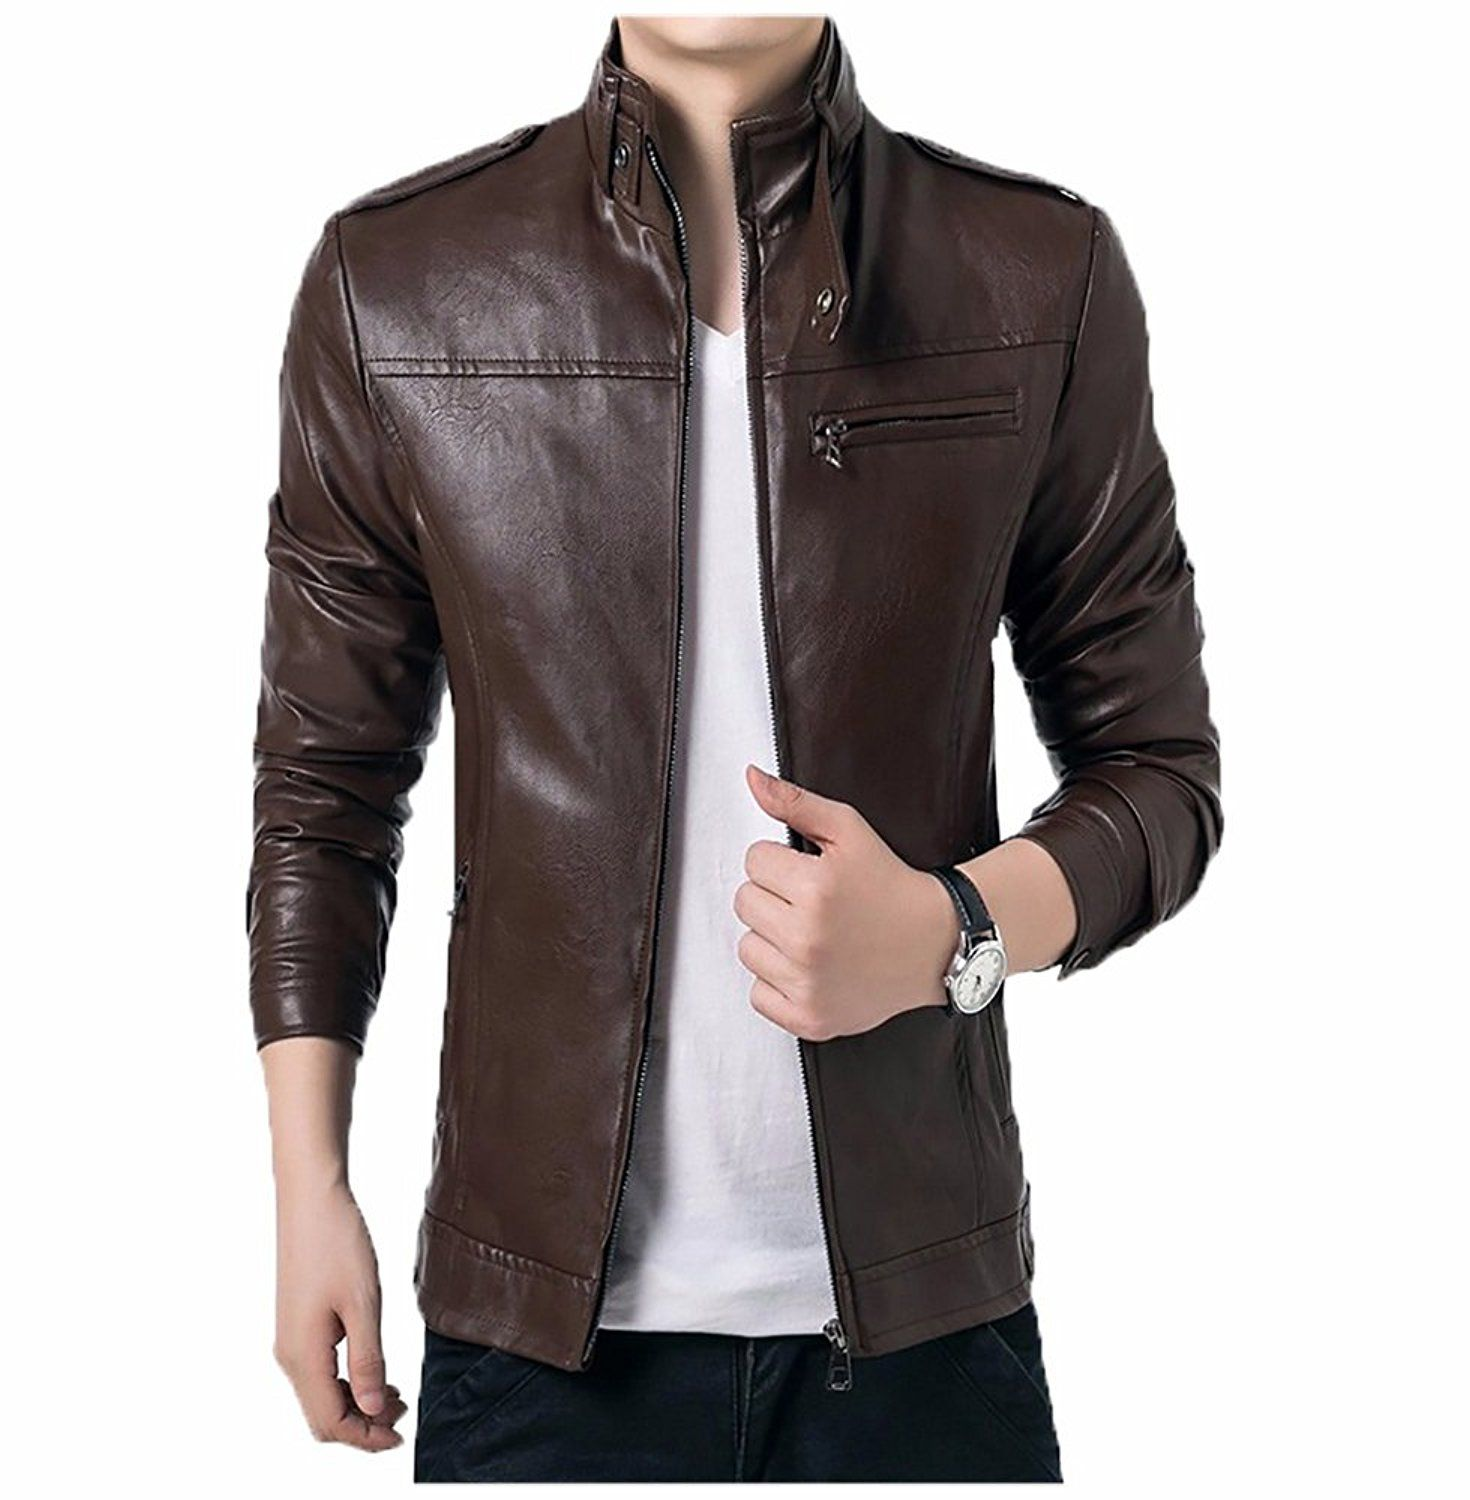 Gordania Bomber Series Menus Slim Fit Zipper Design Jacket Jackets